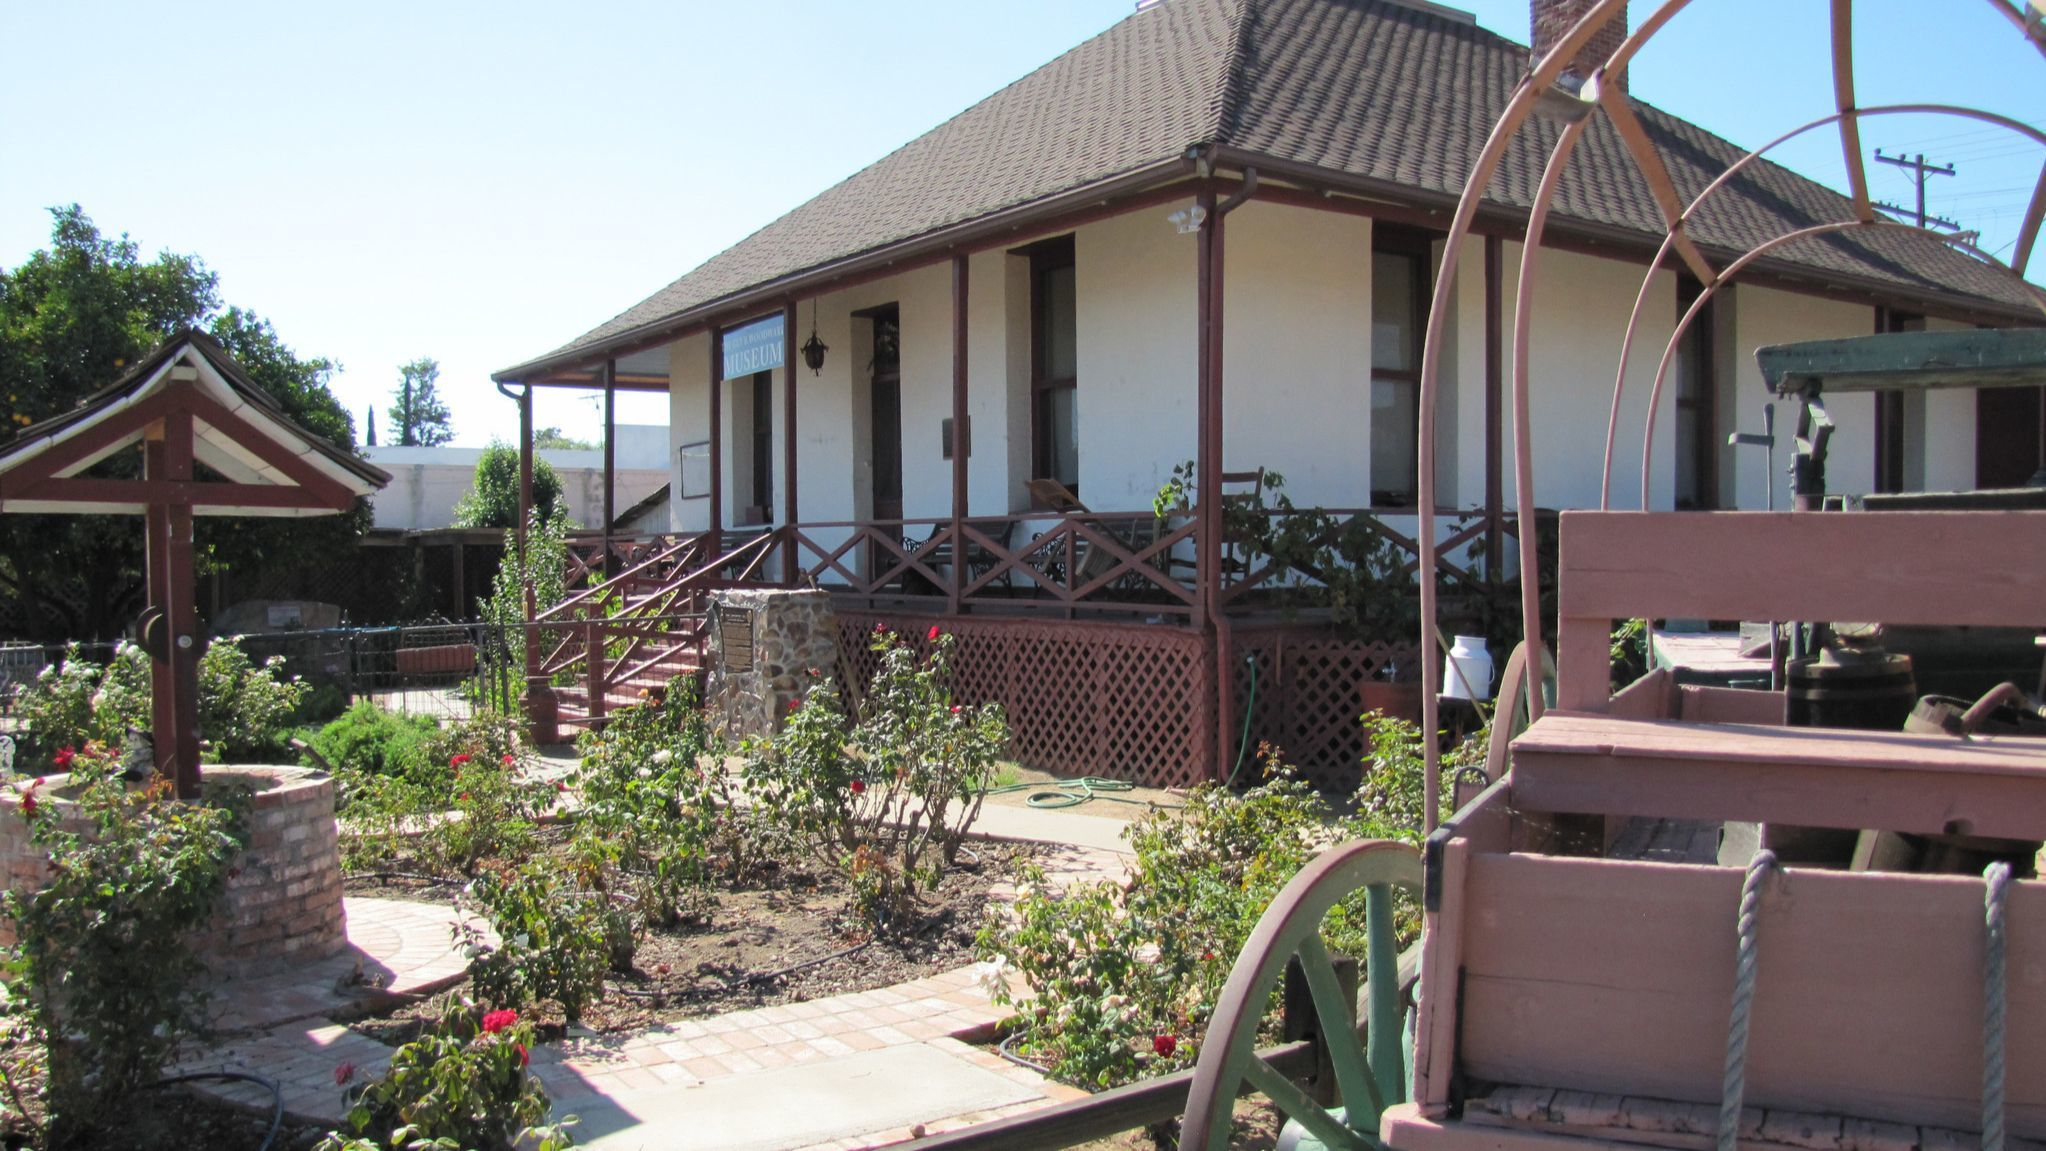 The Guy B. Woodward Museum is home to the Ramona Pioneer Historical Society.